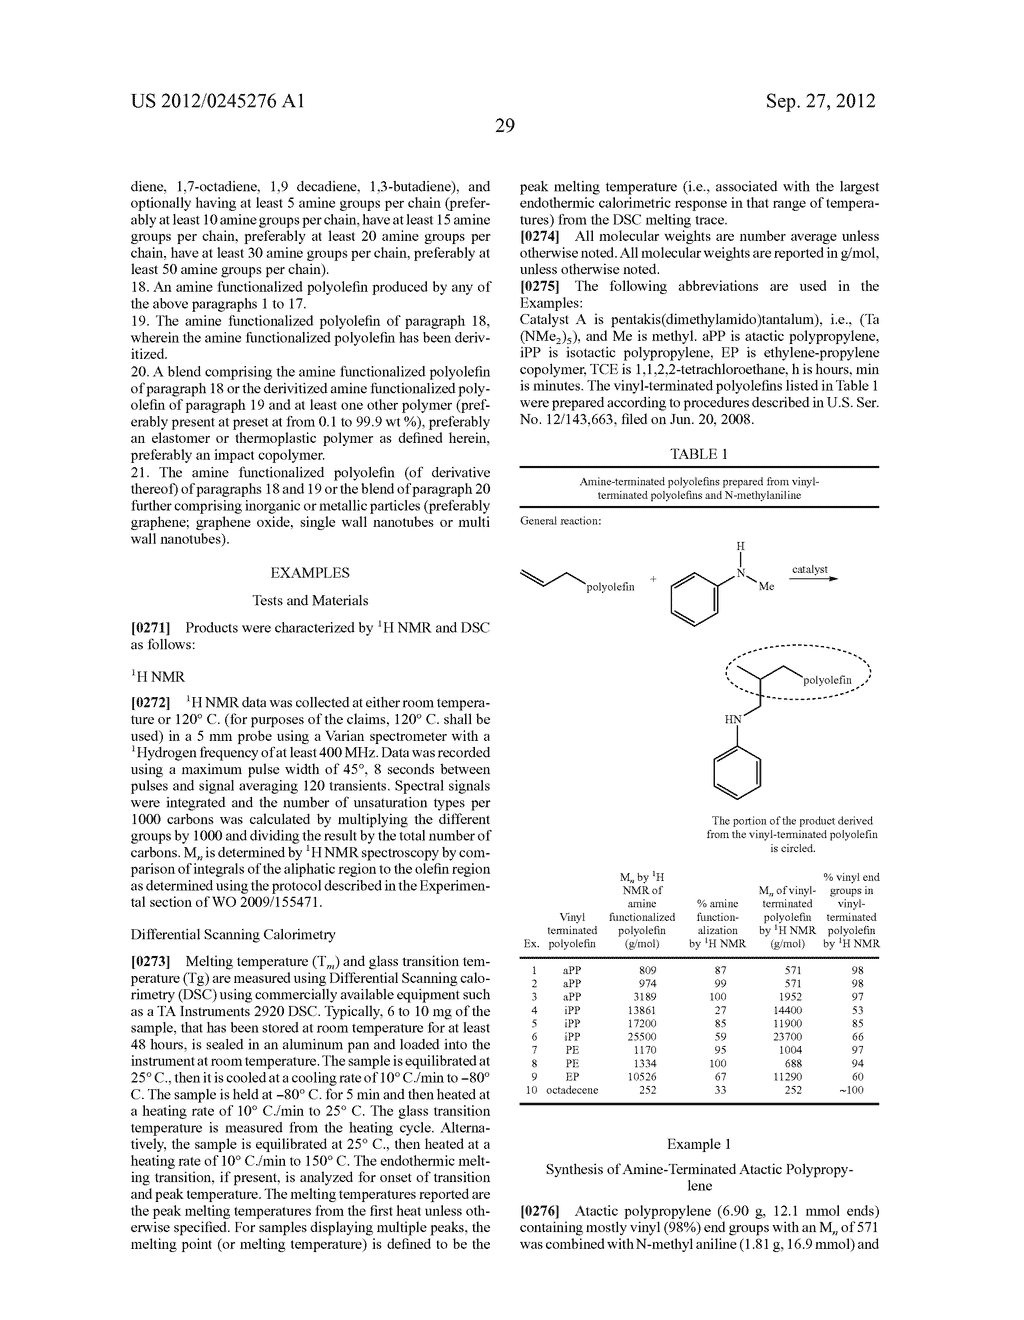 Amine Functionalized Polyolefin and Methods for Preparation Thereof - diagram, schematic, and image 40